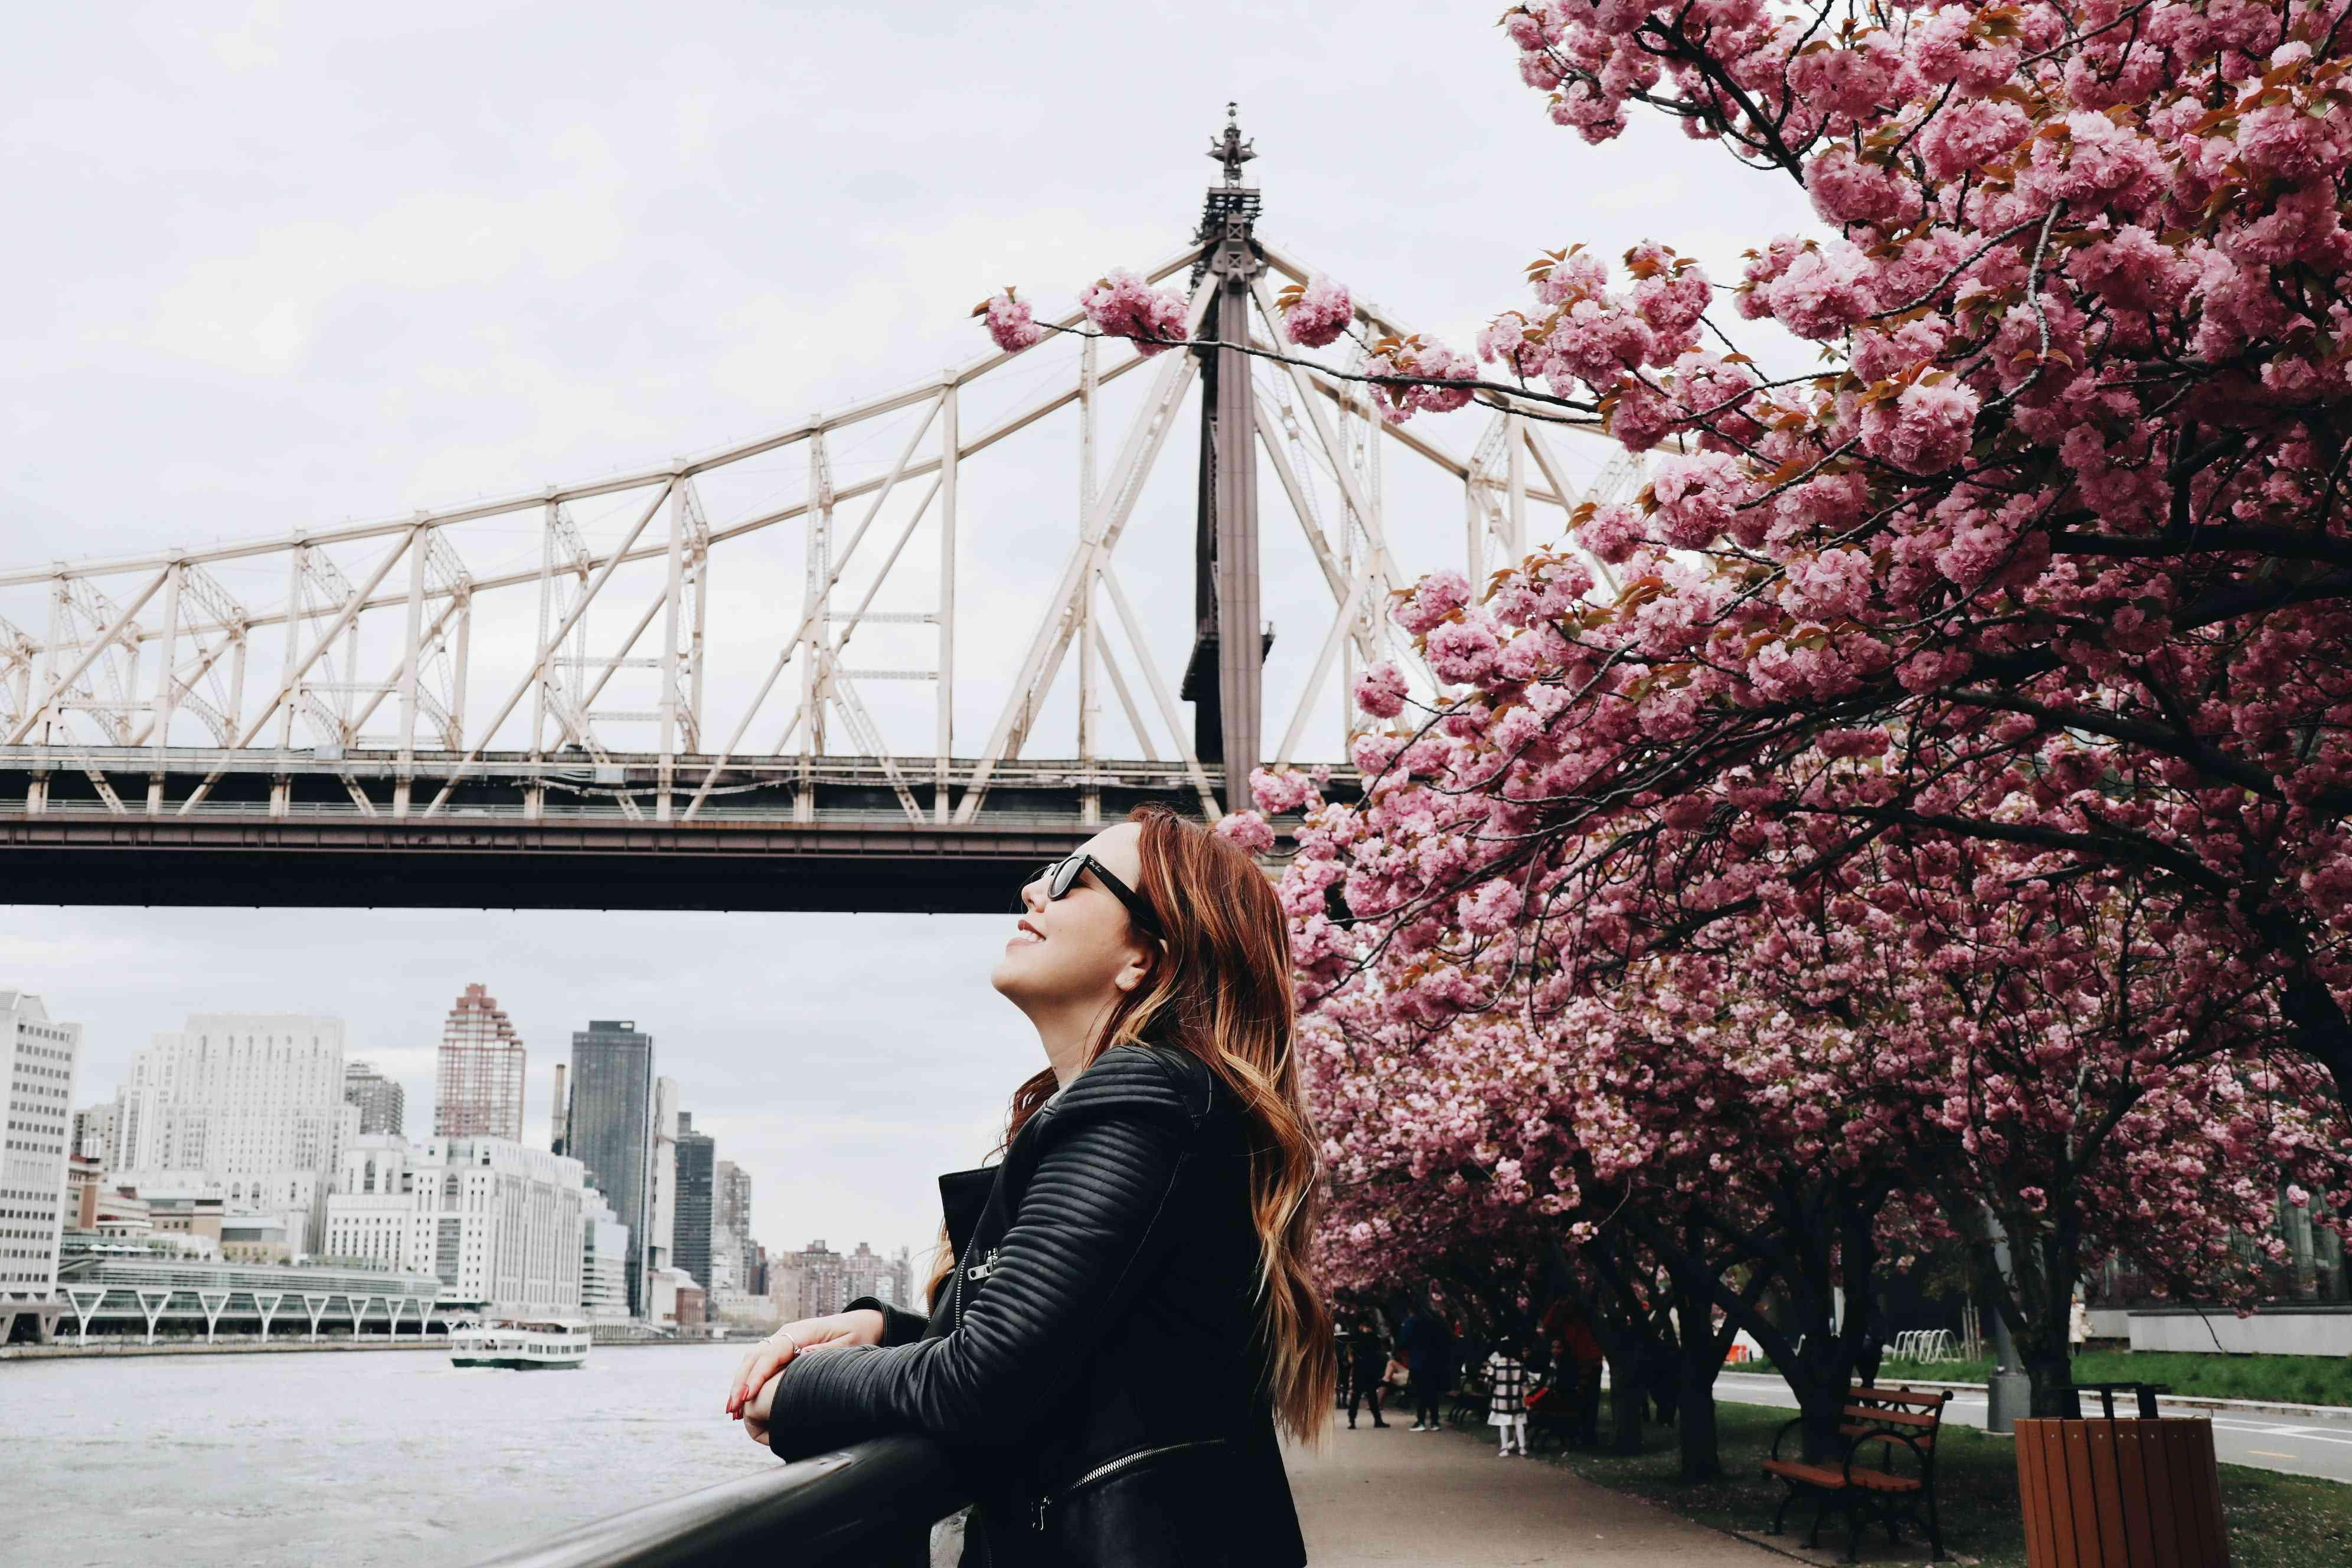 woman outside at the new york waterfront with spring blooms in the trees and a bridge in the background